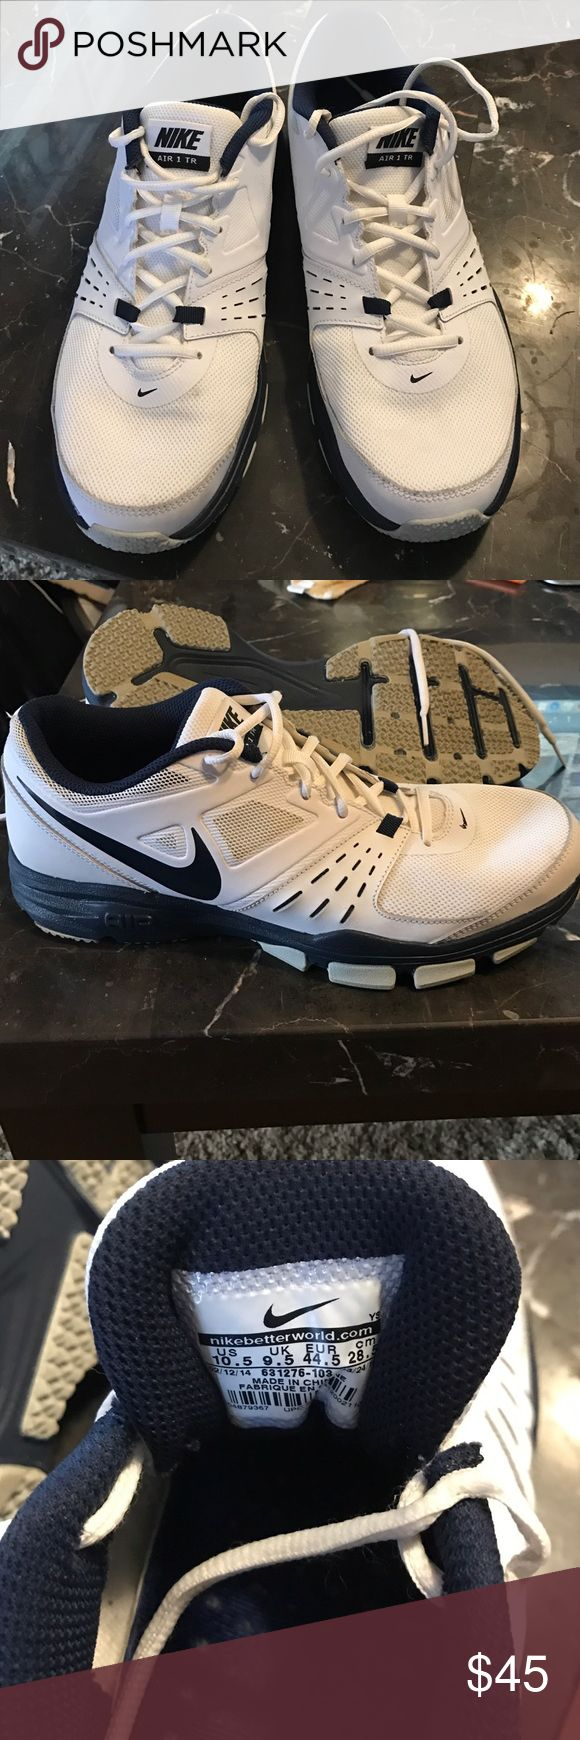 Men's slightly used NIKE Air One TR 10.5 Slightly used Men's NIKE Air One TR men's cross-training shoes. Size 10.5 Nike Shoes Athletic Shoes